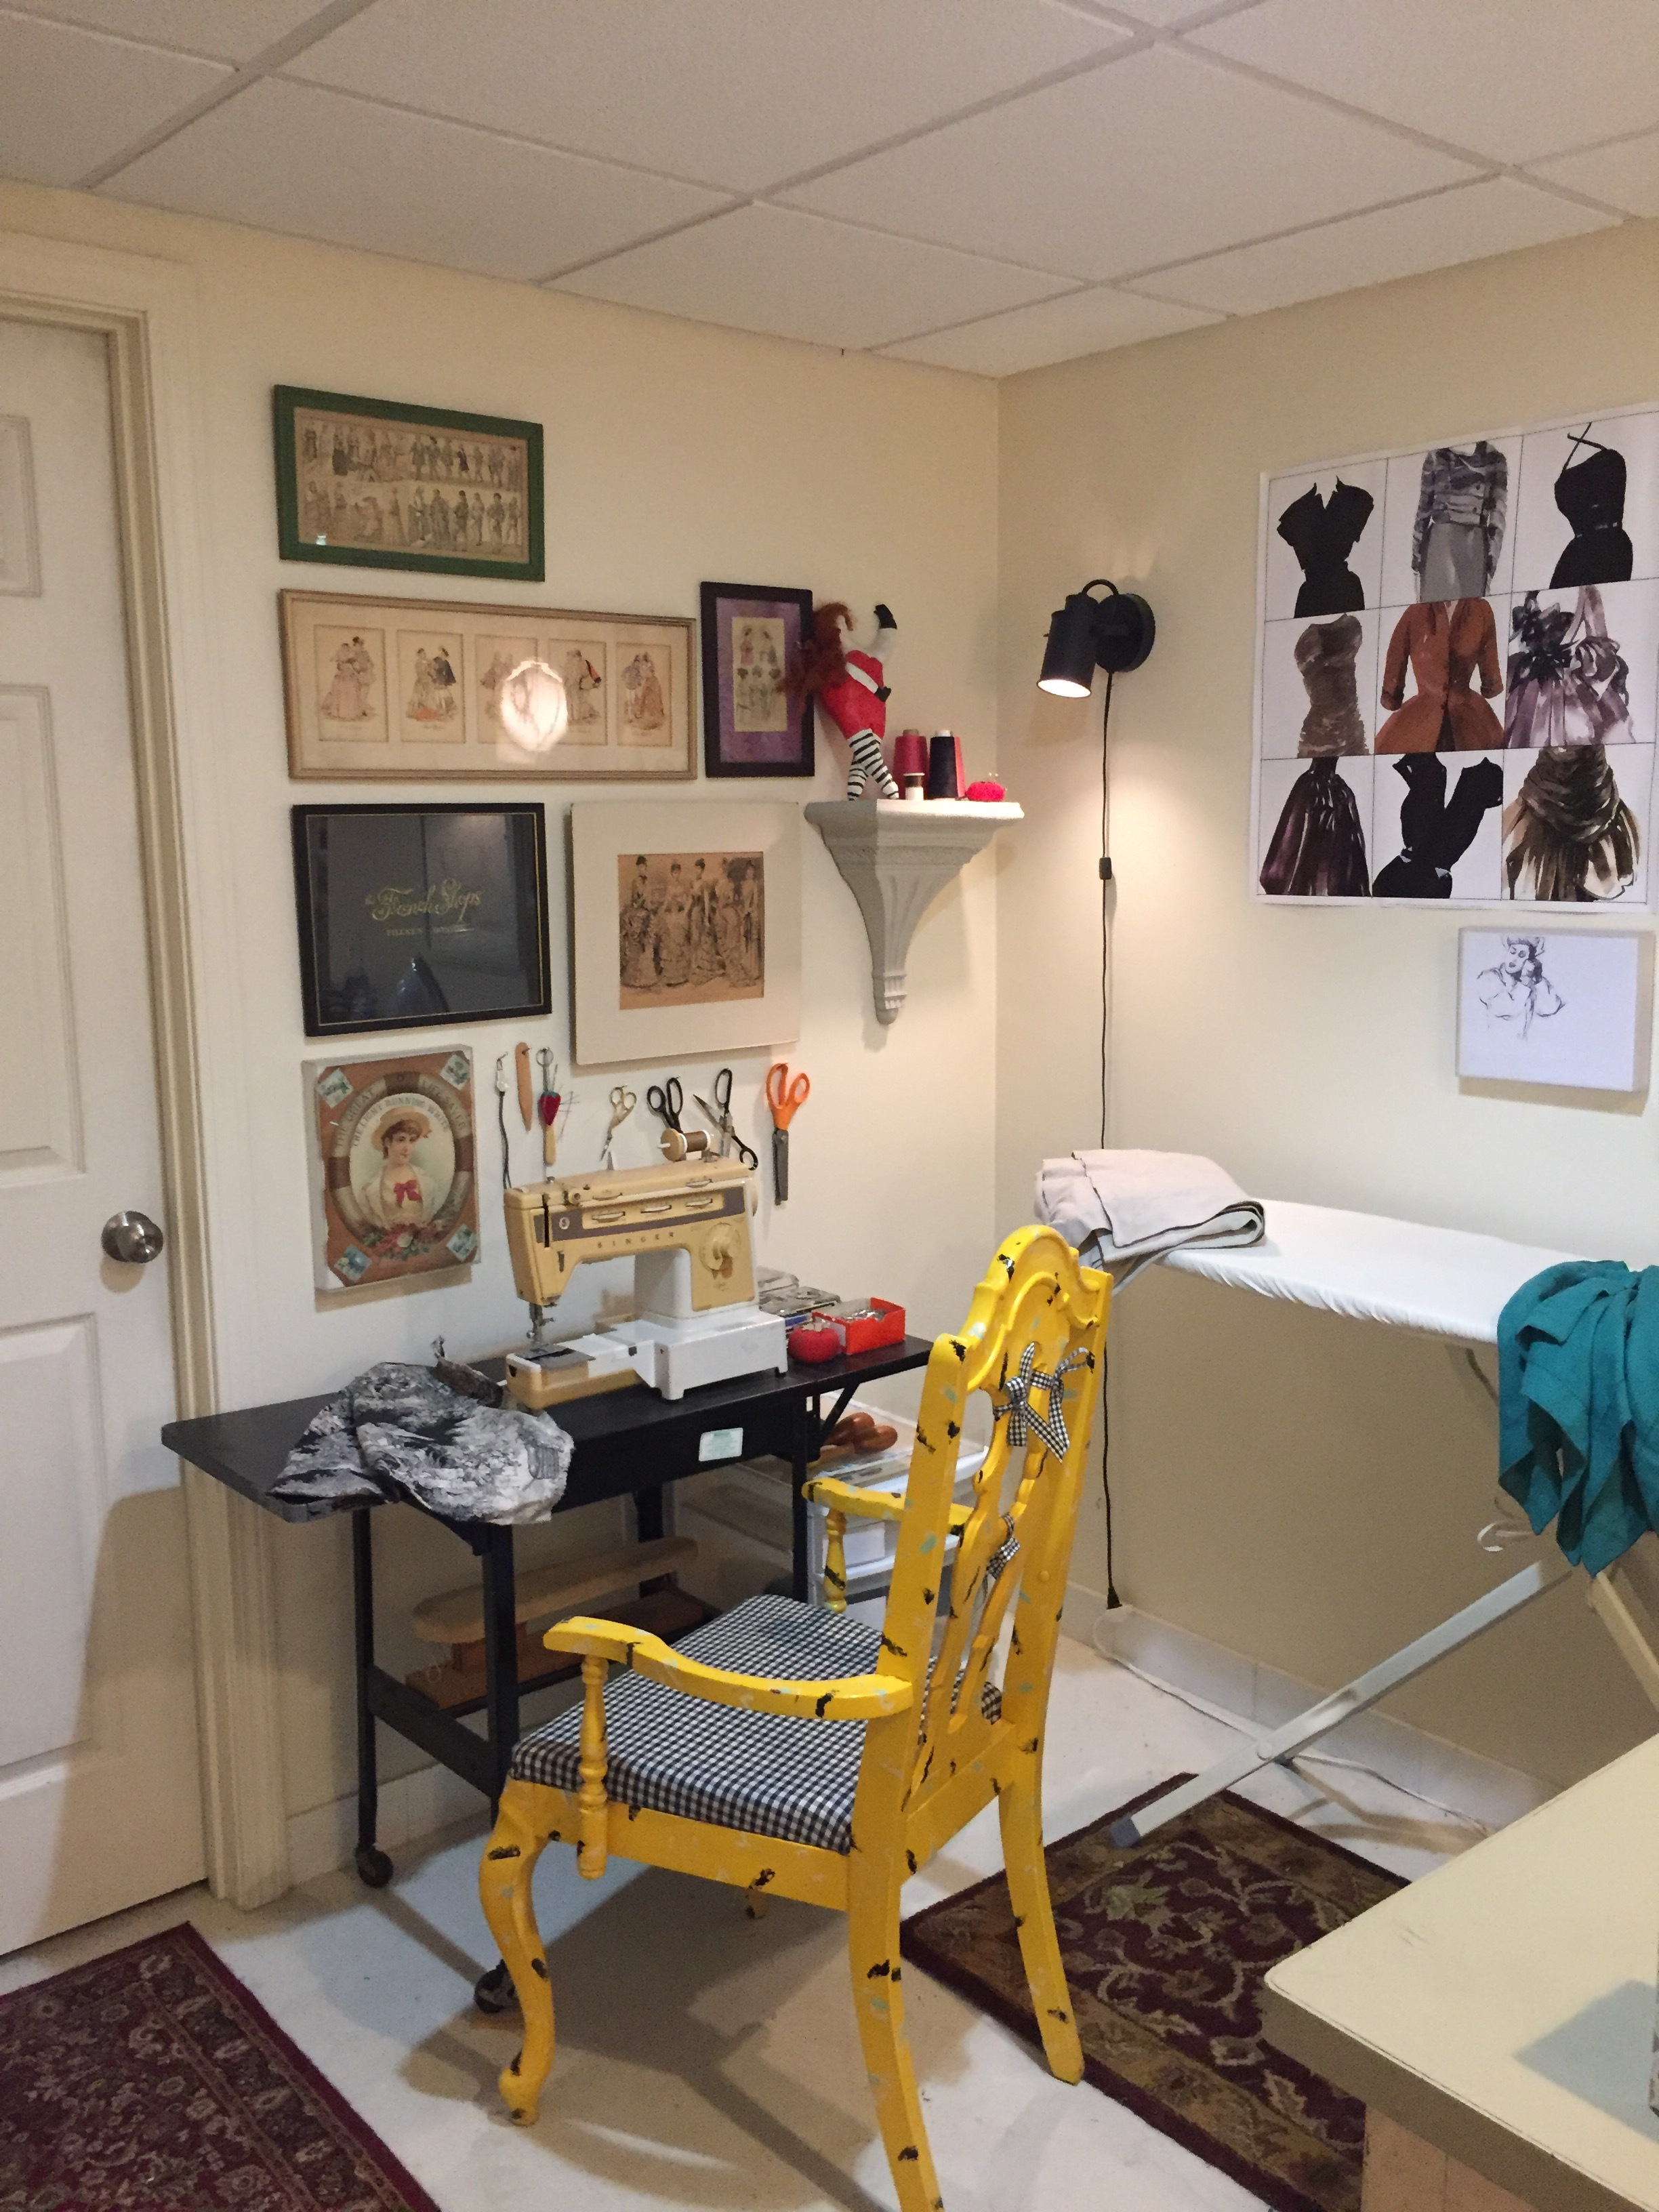 Sewing nook Photo by Barbra Revill